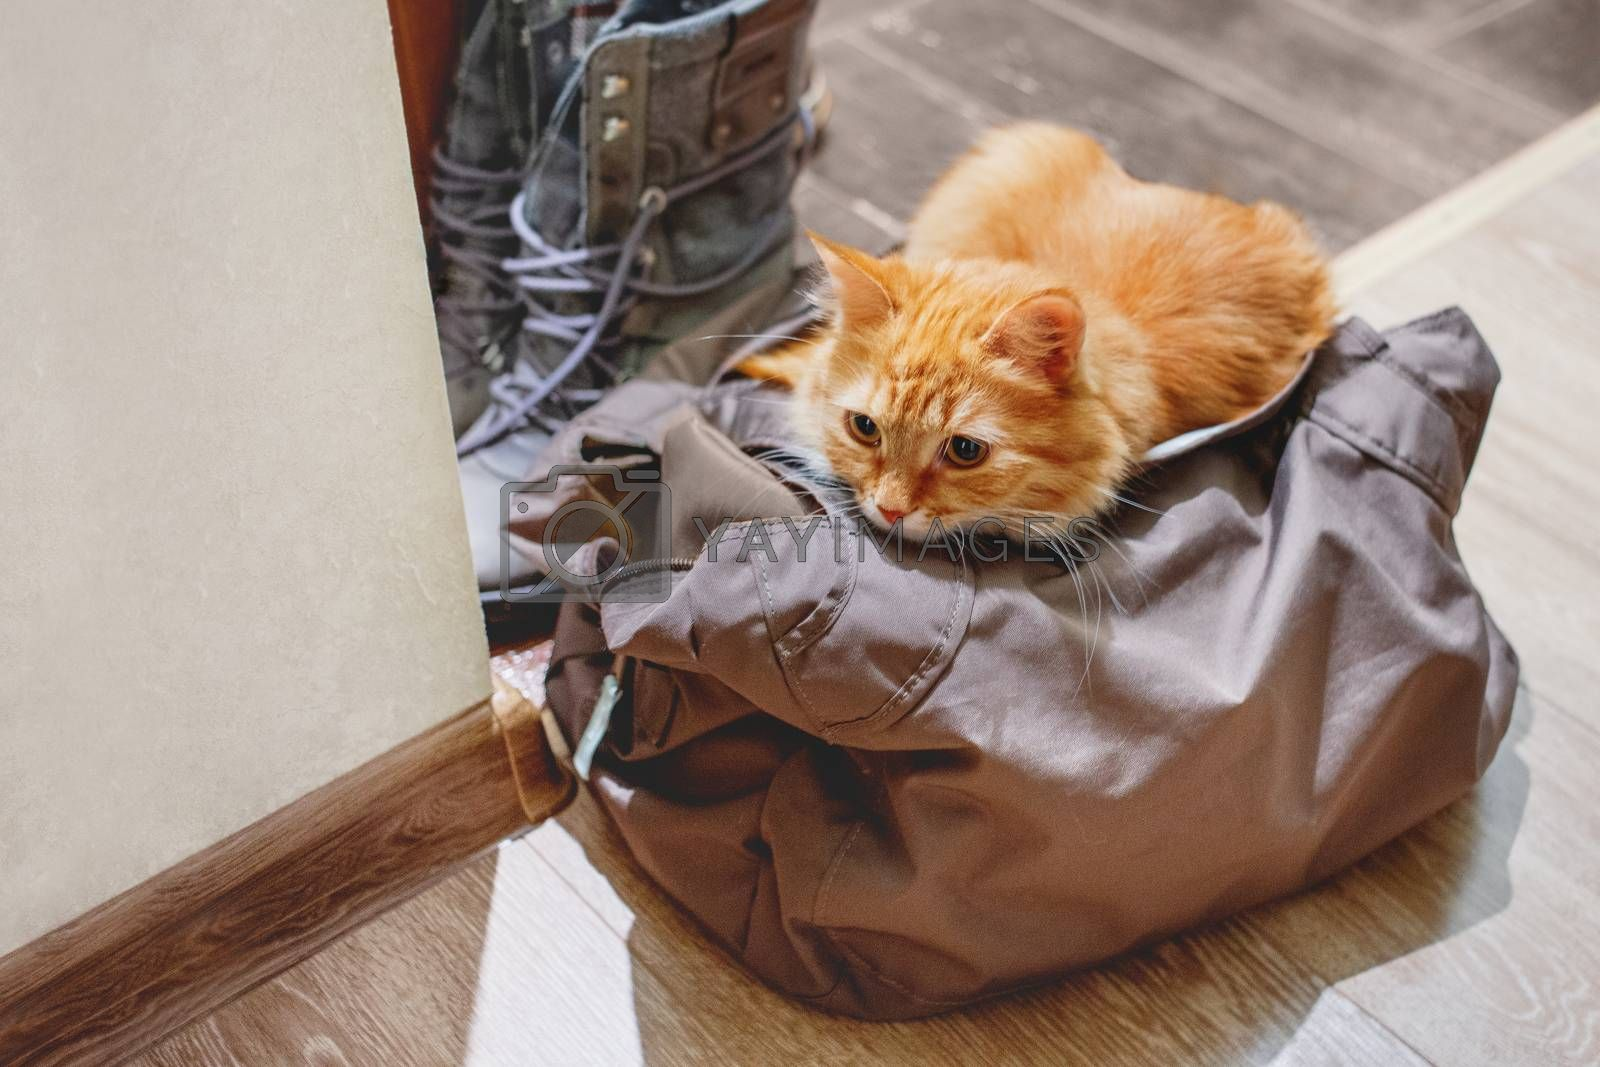 Cute ginger cat sits in bag. Fluffy pet climbed into the owner's gym bag in the hall.